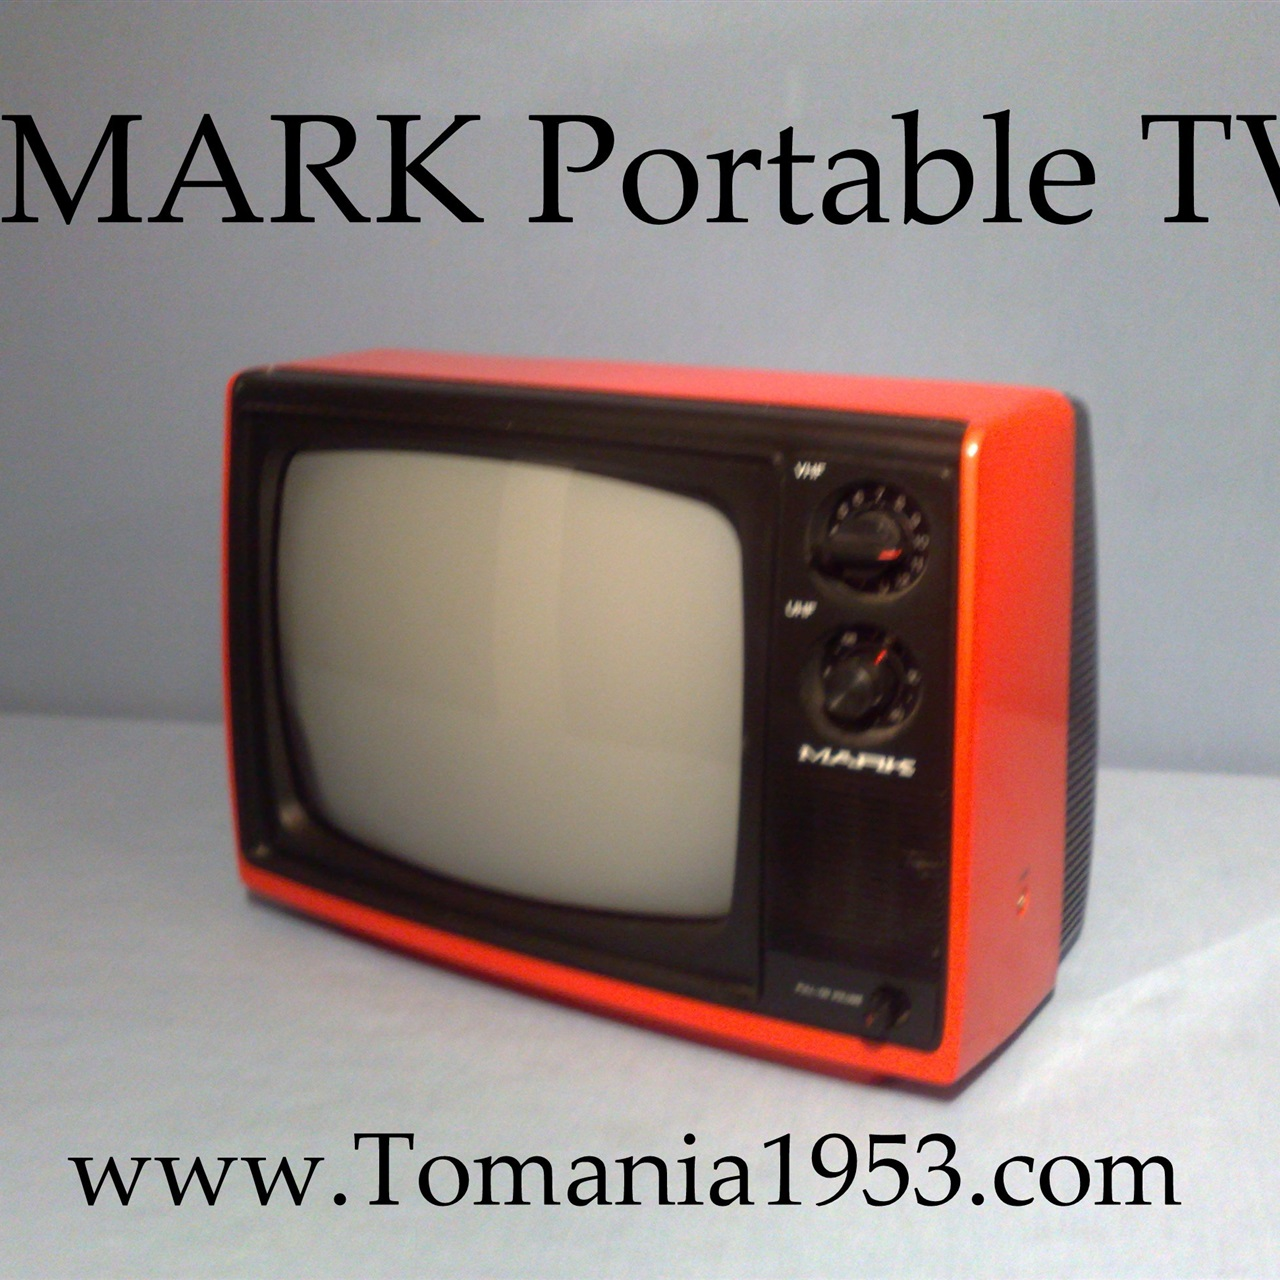 TV Portable - www tomania1953 com